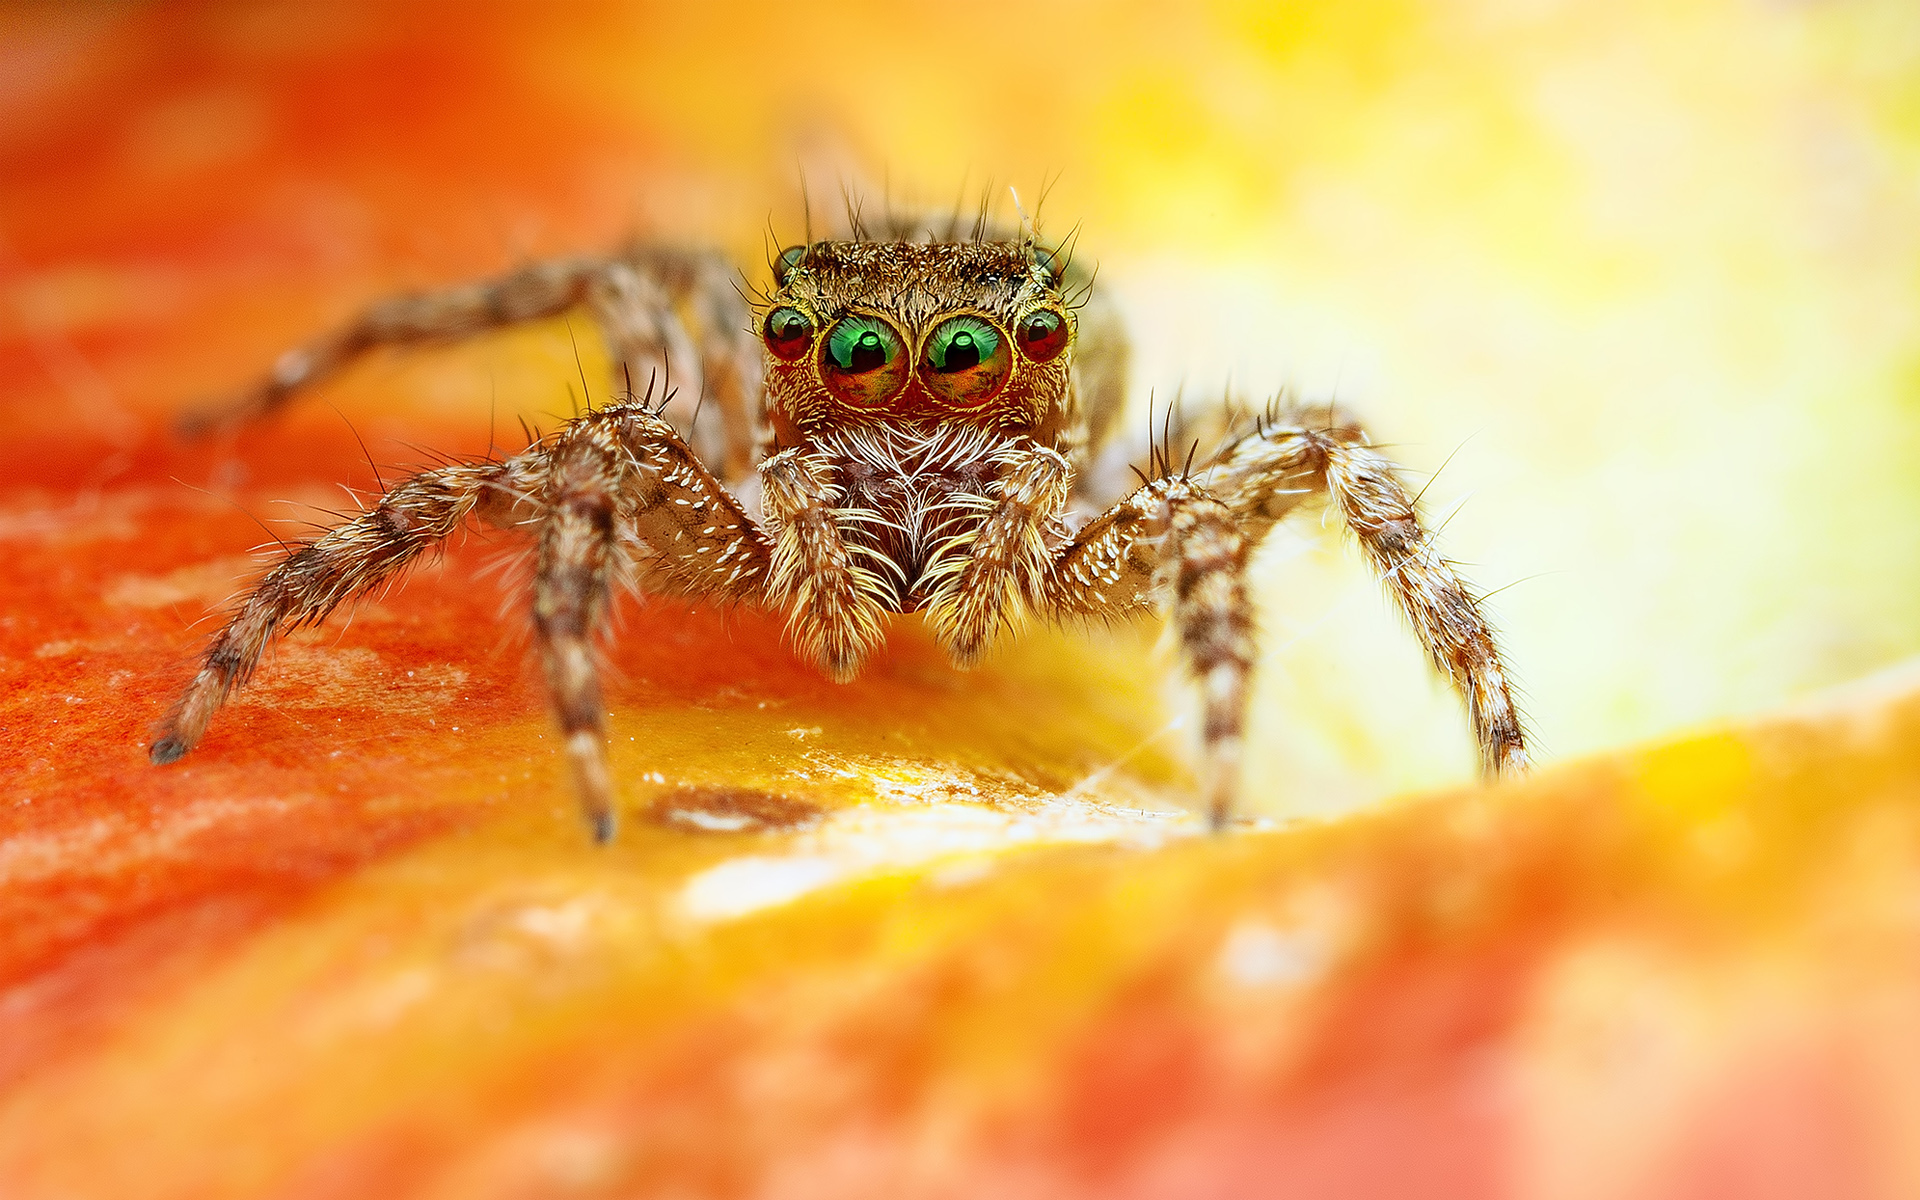 HD Wallpapers Scary Spider